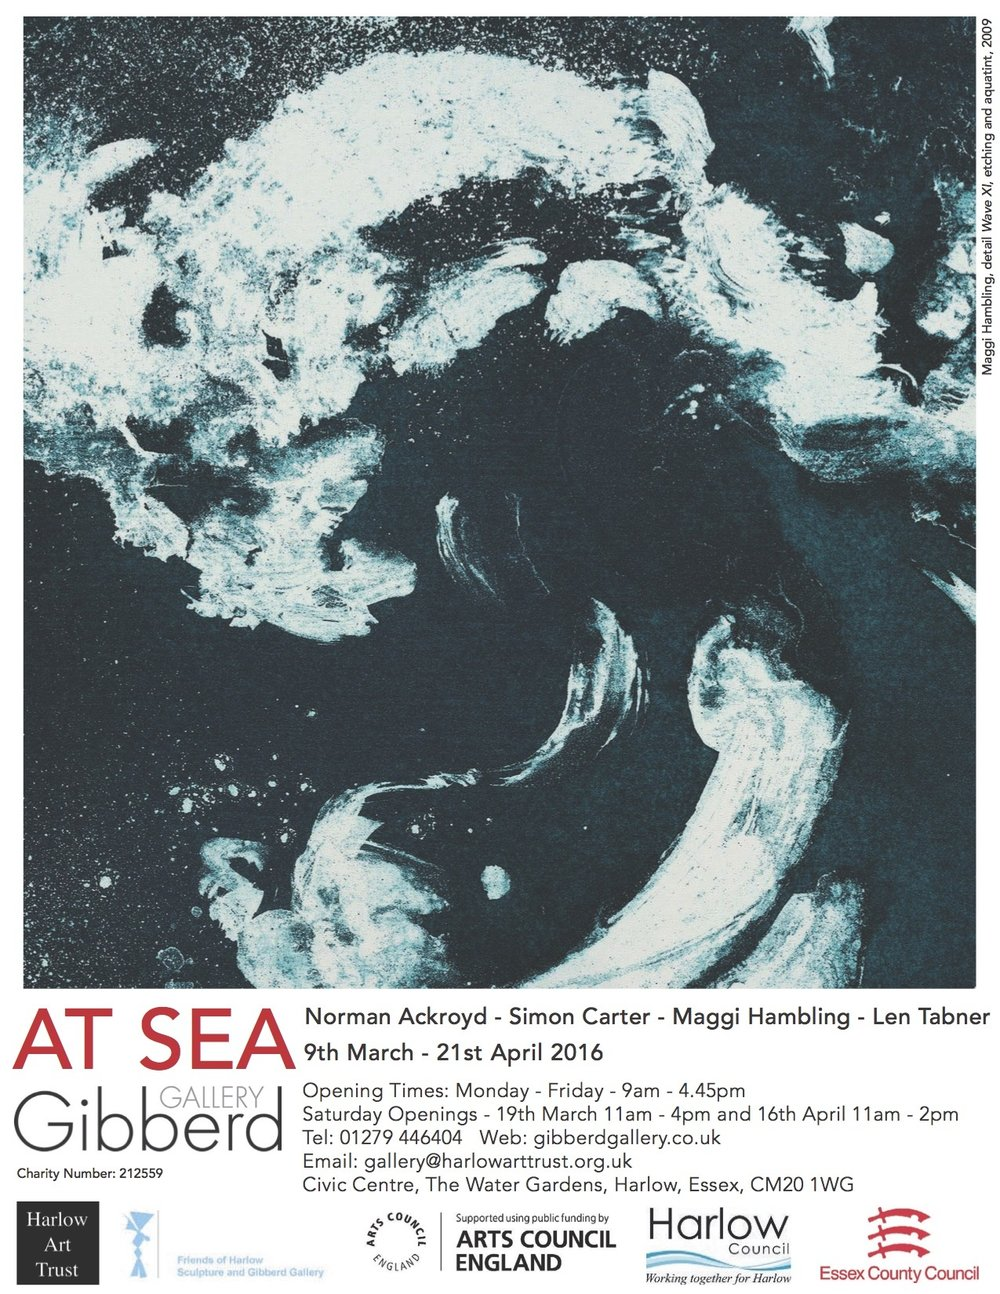 I am showing 2 large and 12 small canvases in this show which opens on 9th March.